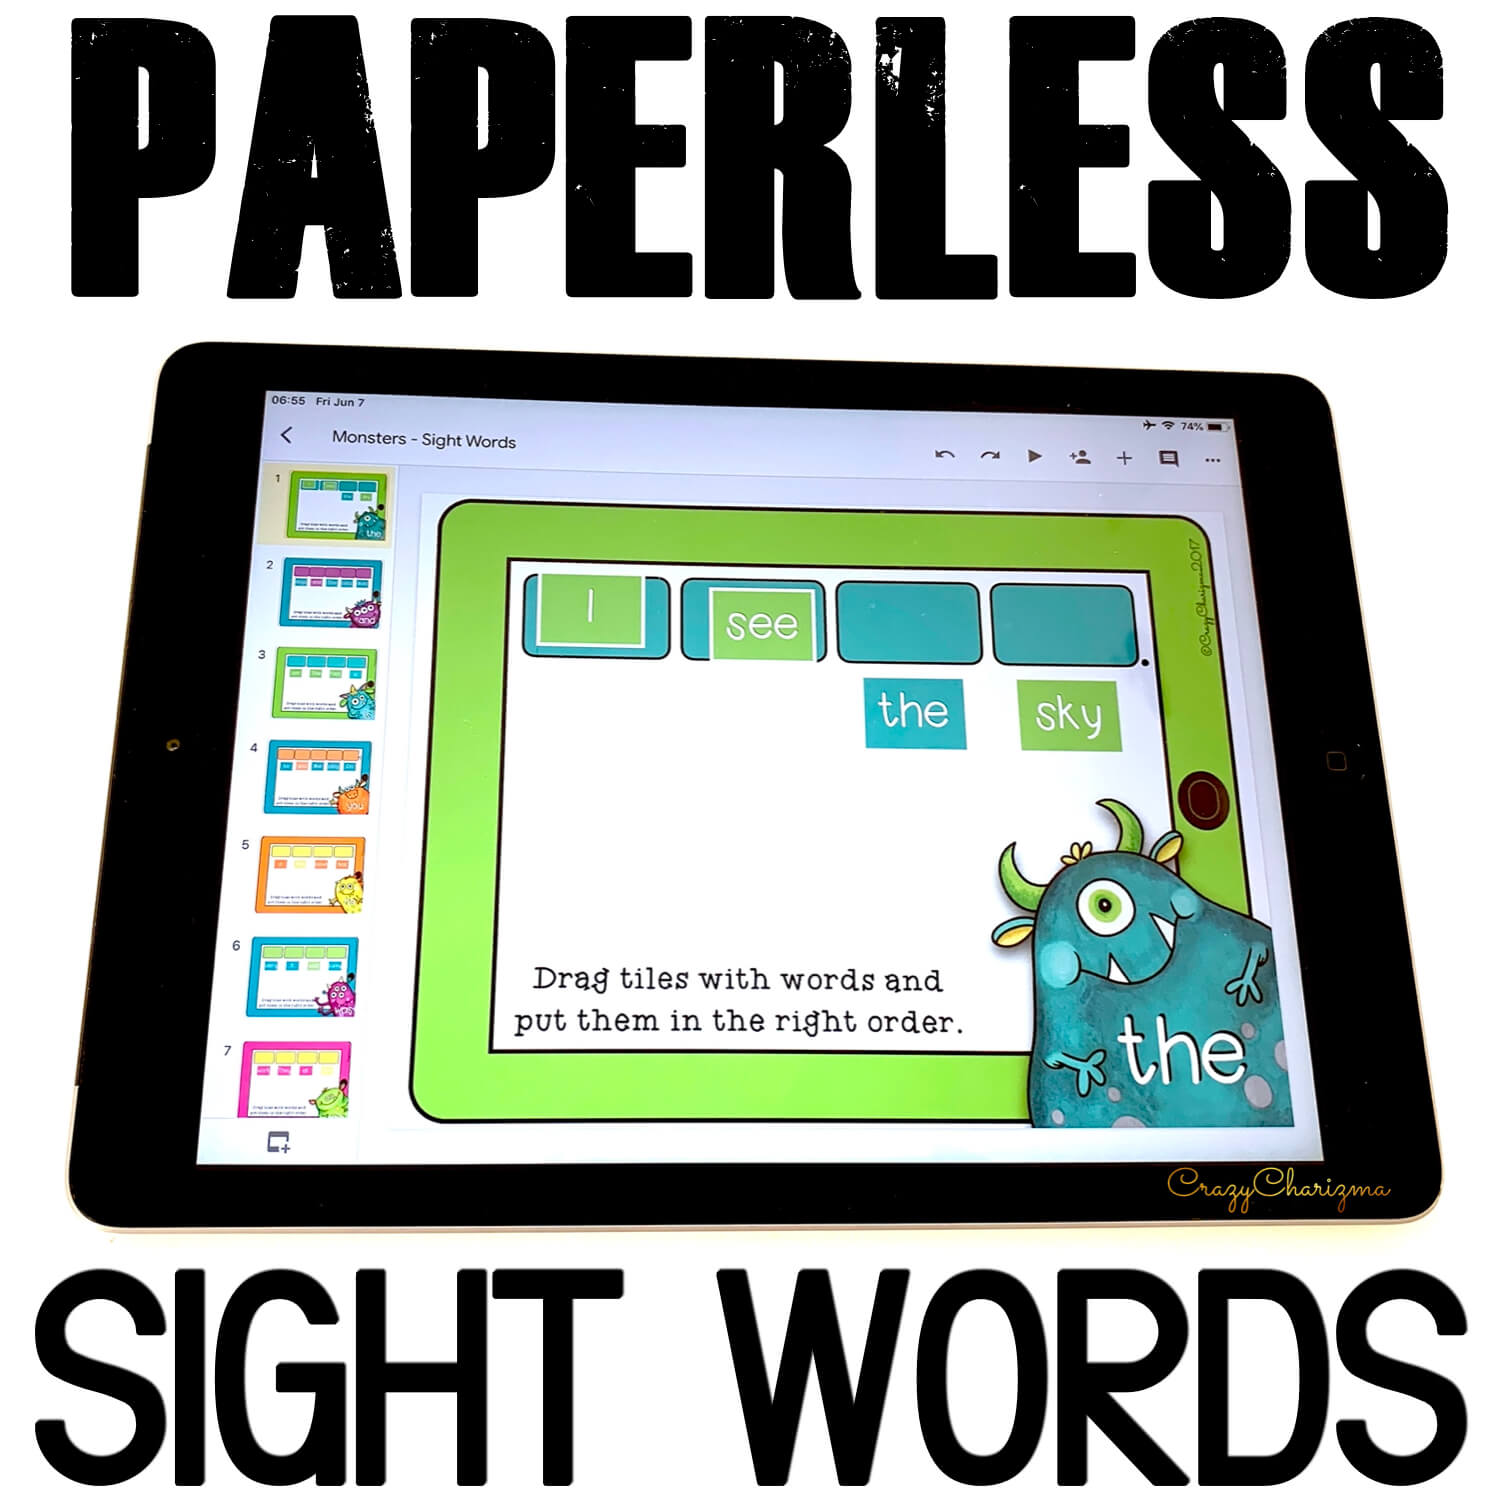 Get these paperless resources and practice sight words. Put words in the right order to build a sentence. Improve sentence fluency with Google Classroom activities!